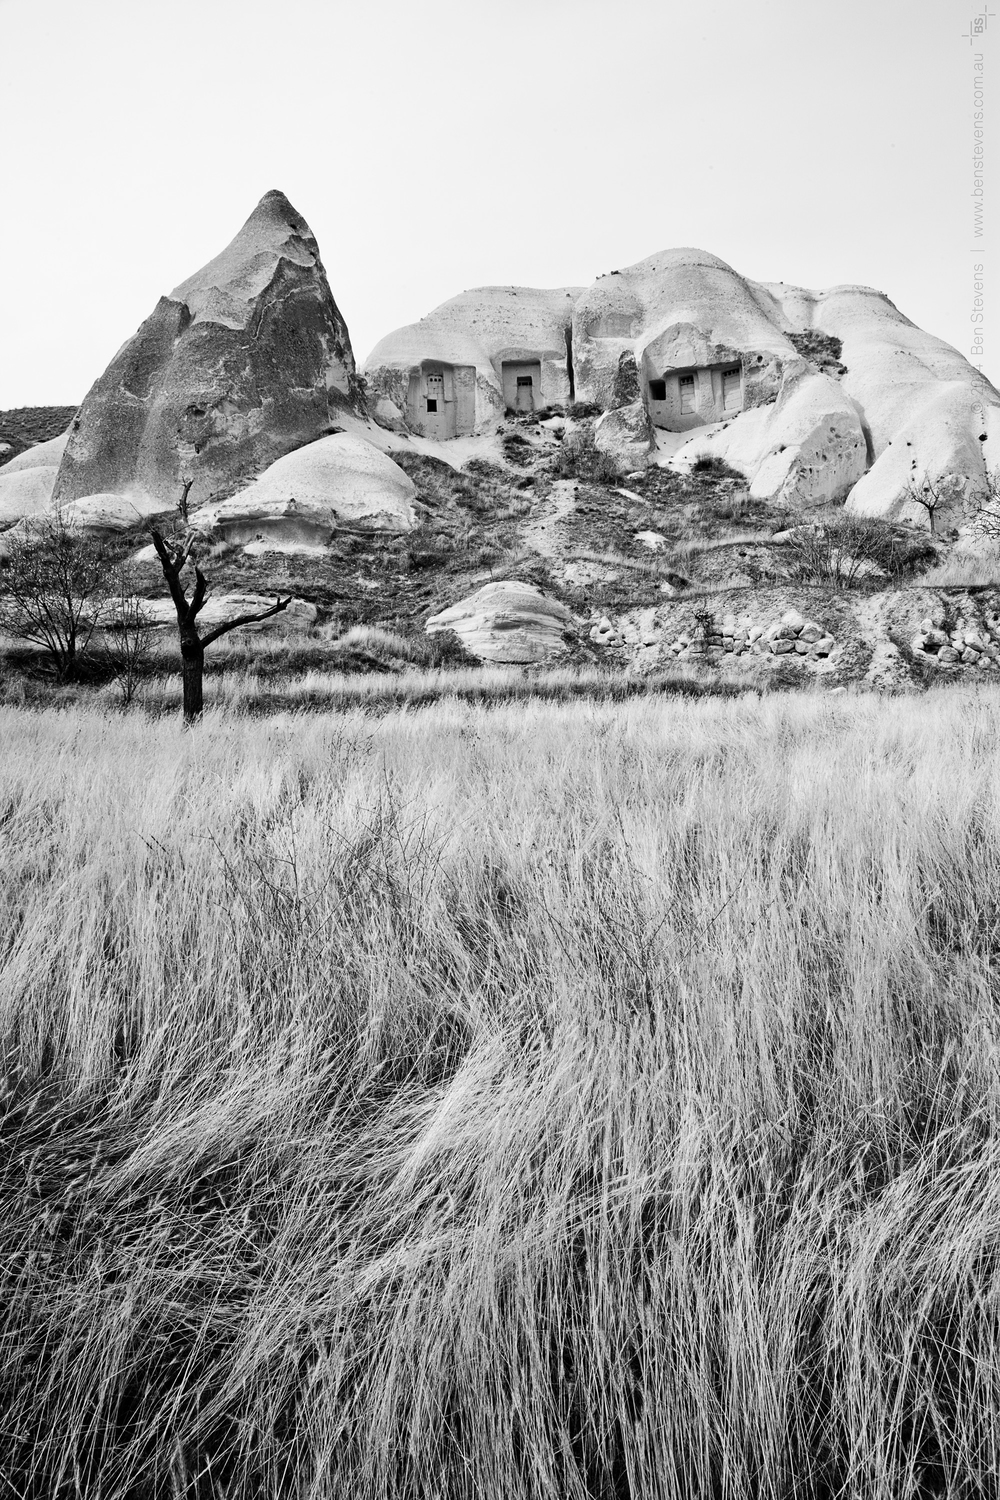 Remnants |Cappadocia, Turkey March 2014 The long abandoned homeof an 11th century Christian, thiscave and othersin Cappadocia arewearing away with the wind, sand and rain of Turkey's harsh climate. Purchase printshere